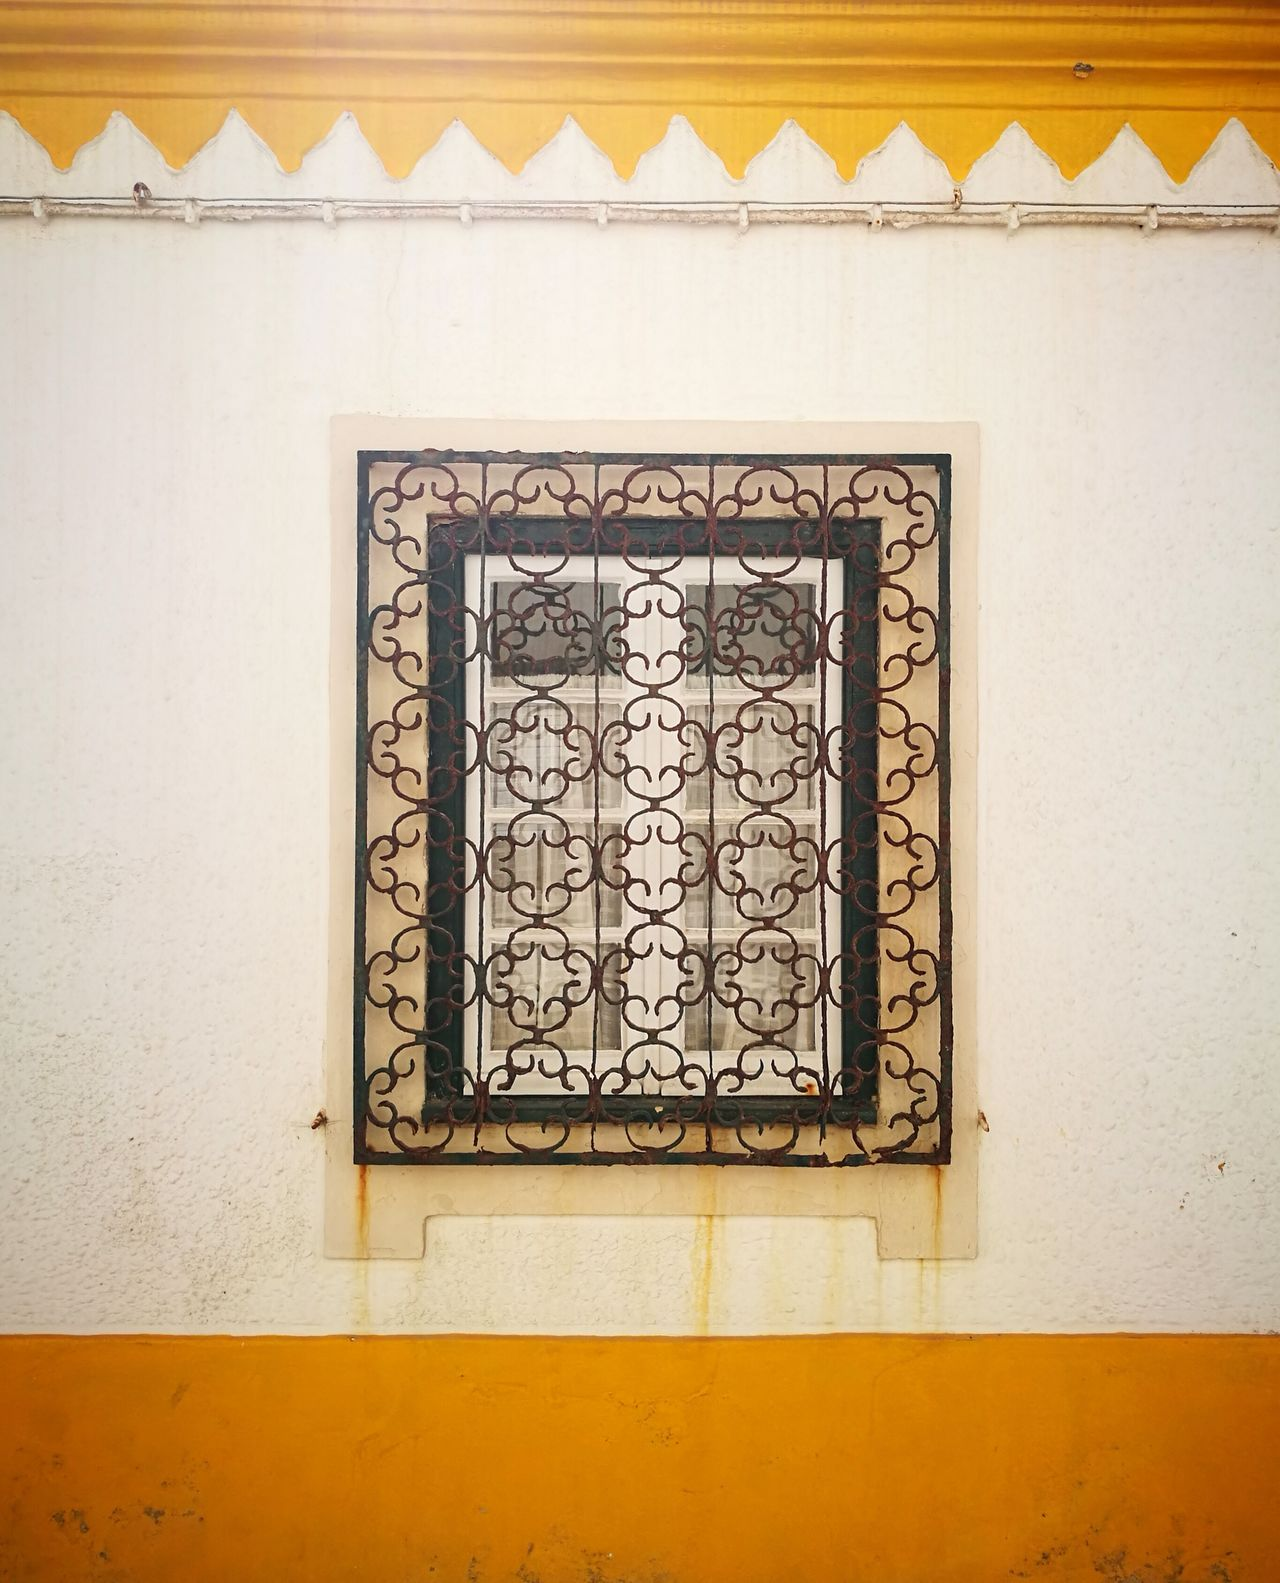 Paint The Town Yellow Ornate Design Yellow Architecture Indoors  Window No People Close-up Detail Rusty Rusty Metal Rusty Wall Urban Geometry Urban Window Pattern Huawei P9 Leica